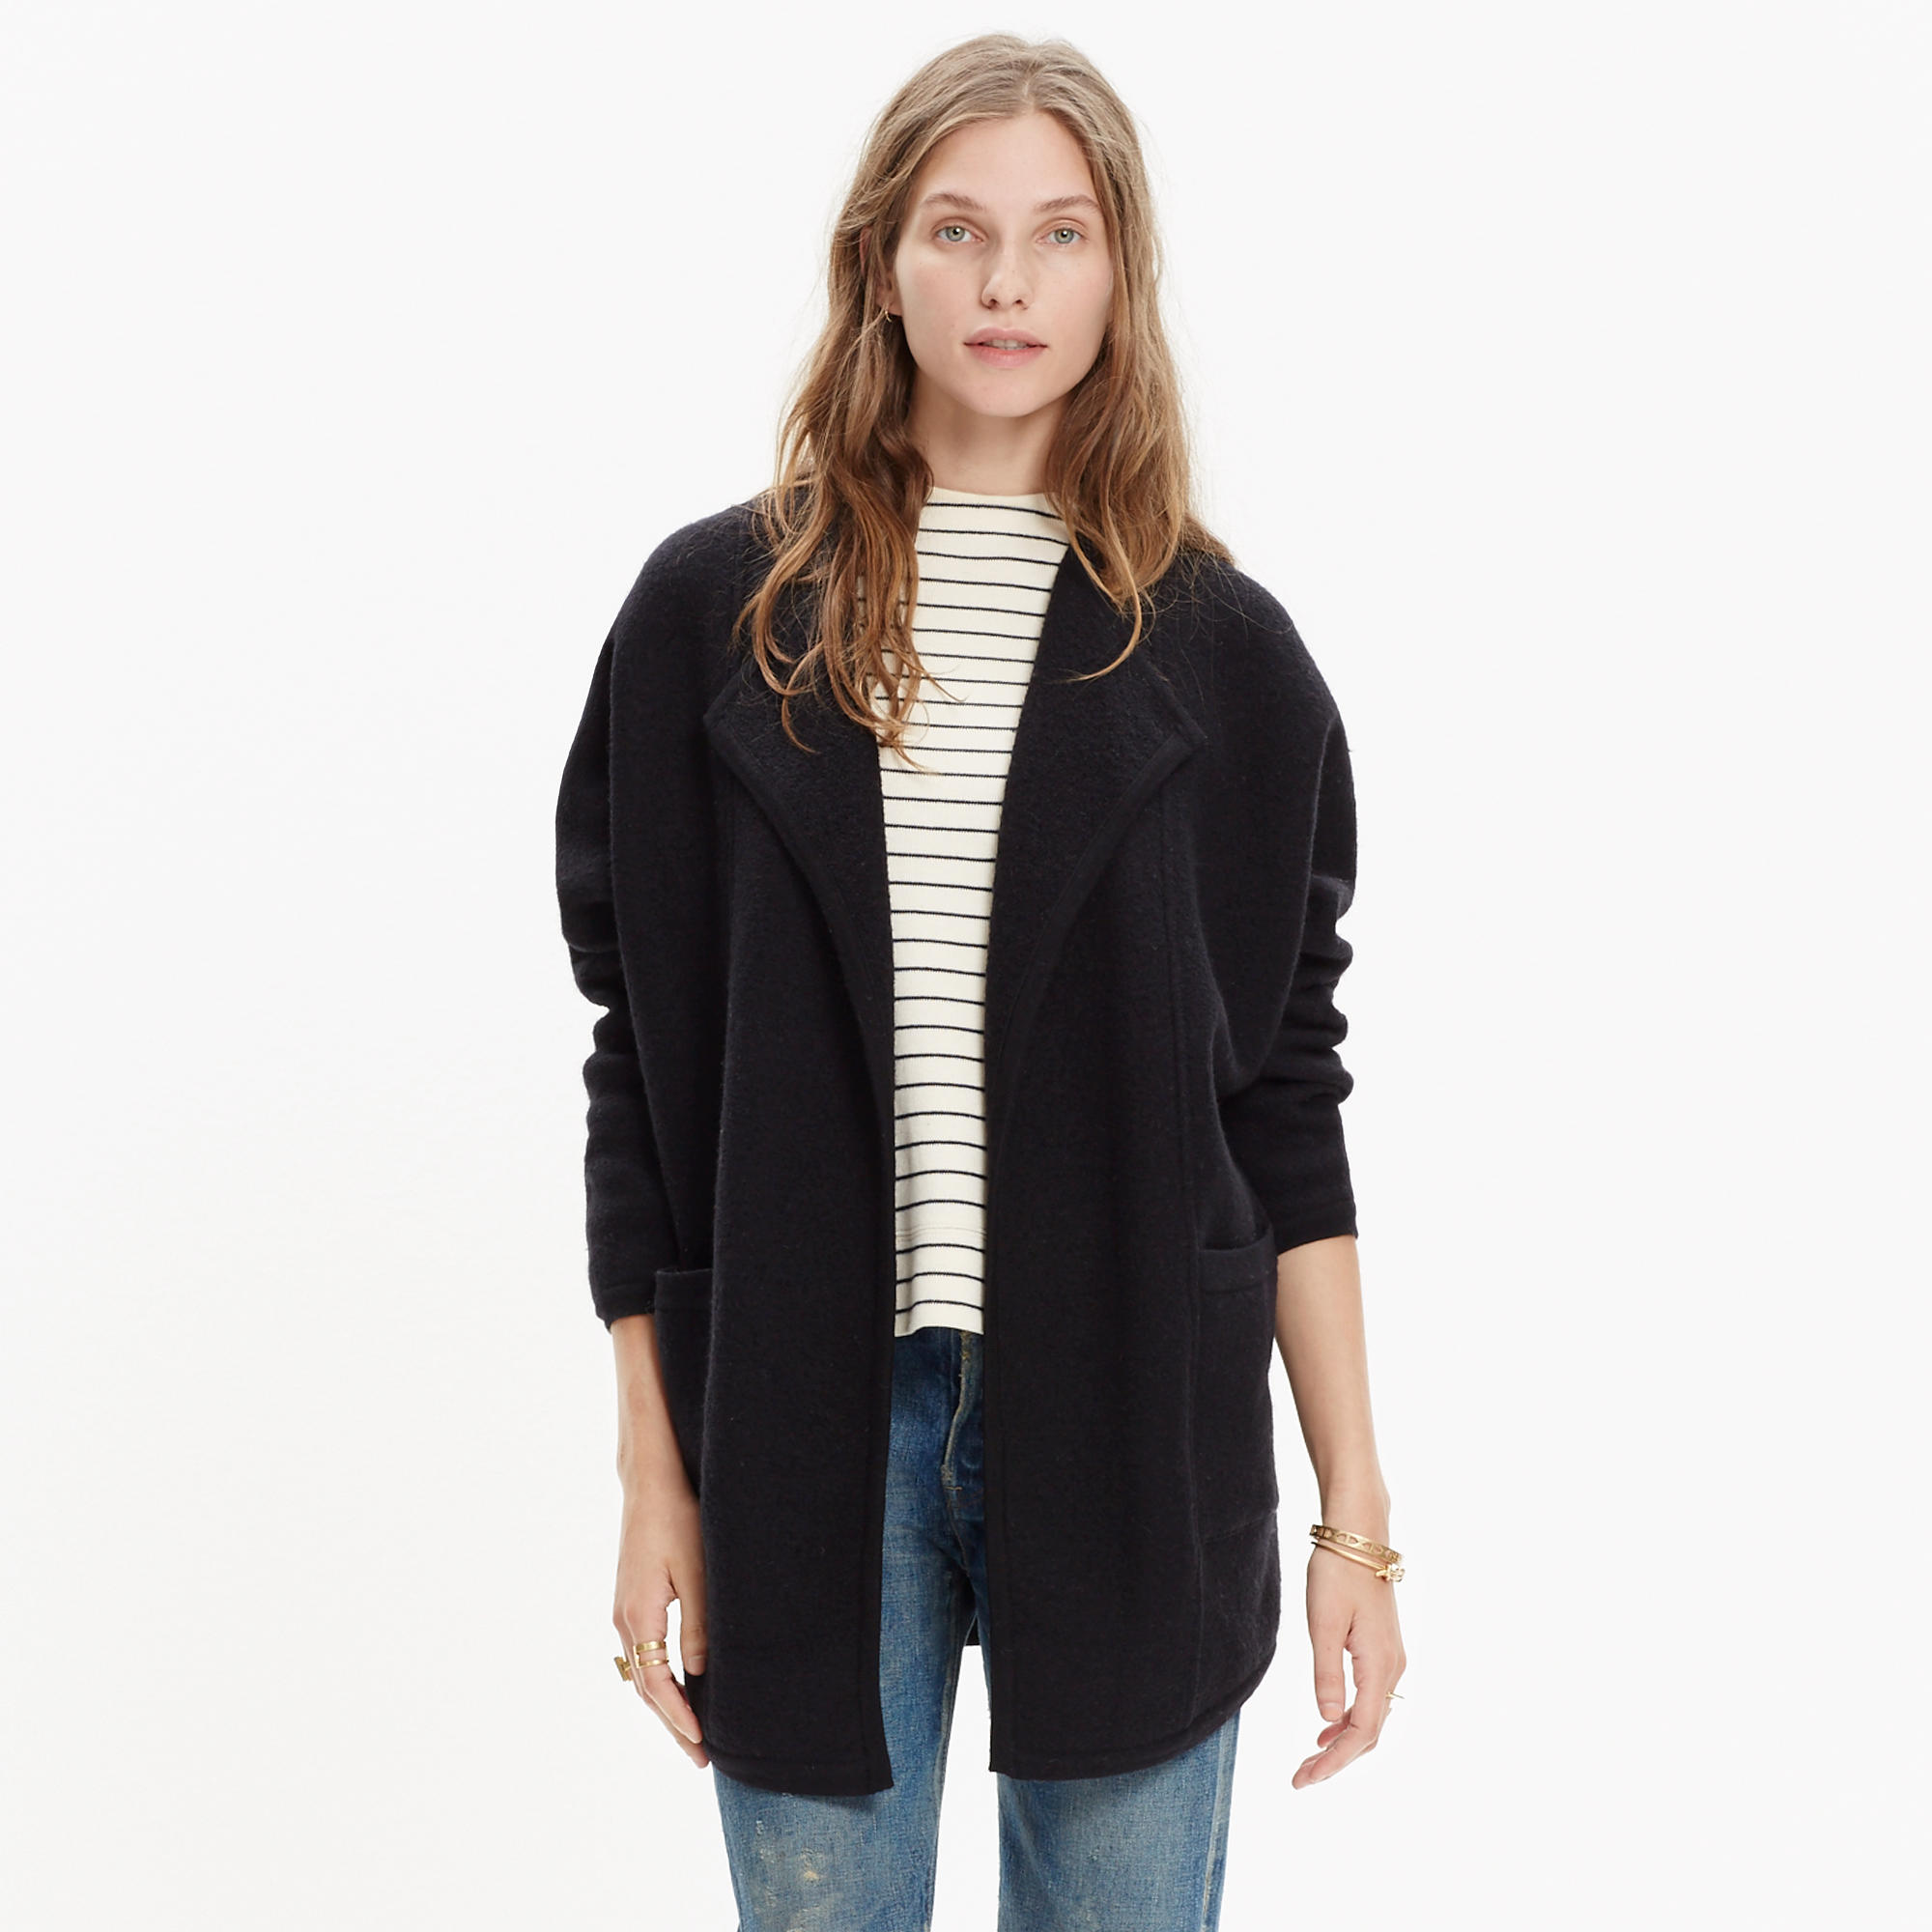 Oversized Sweater-Jacket : cardigans | Madewell